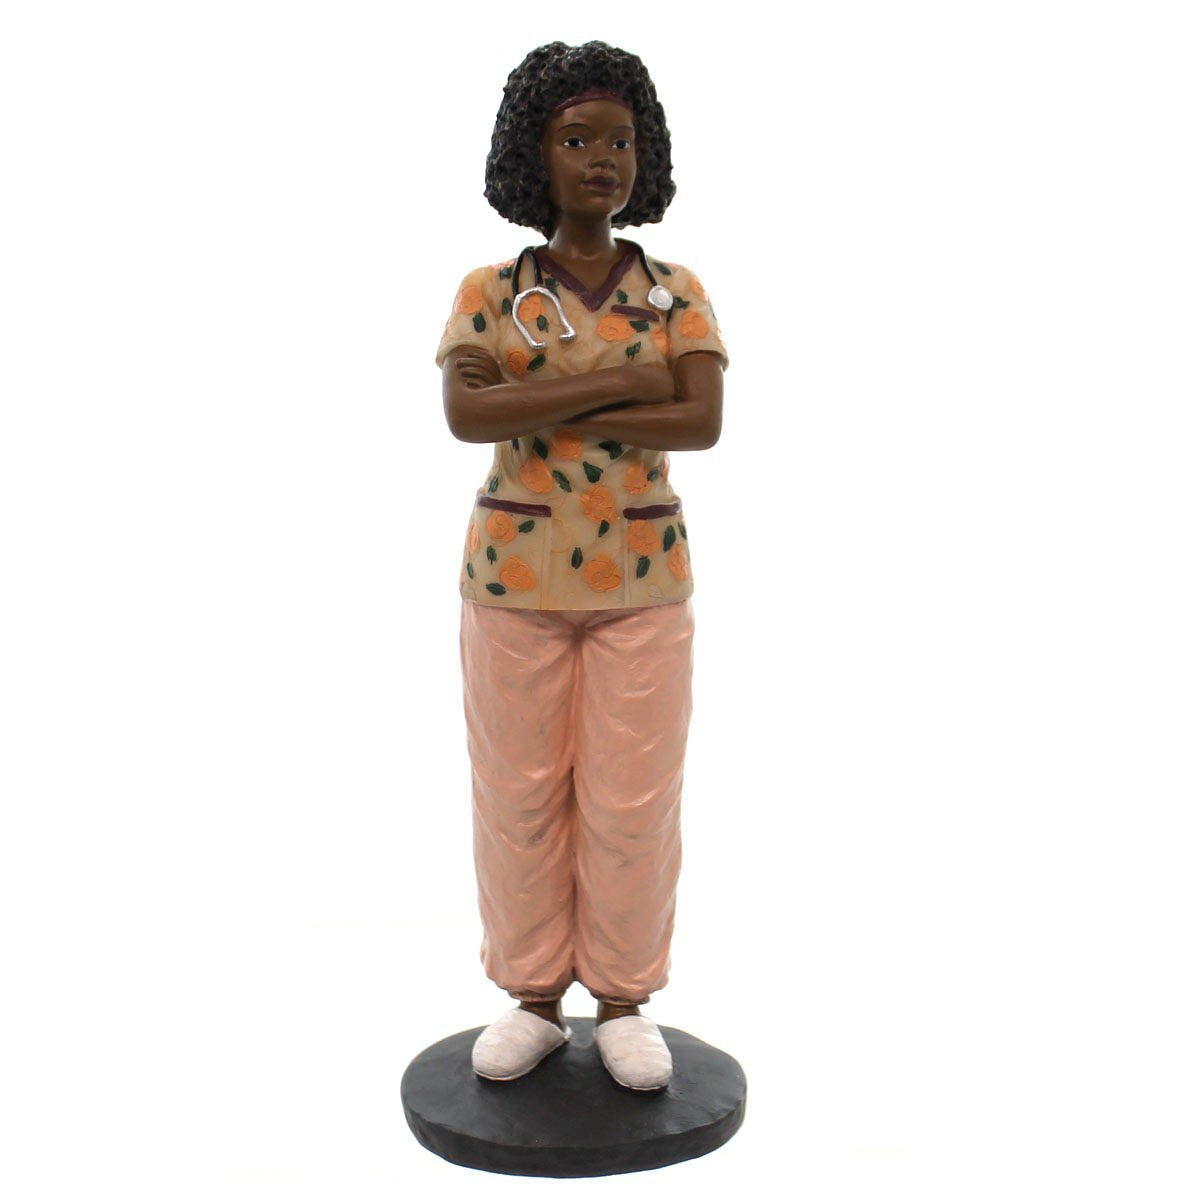 African American Nurse Figurine by Positive Image Gifts